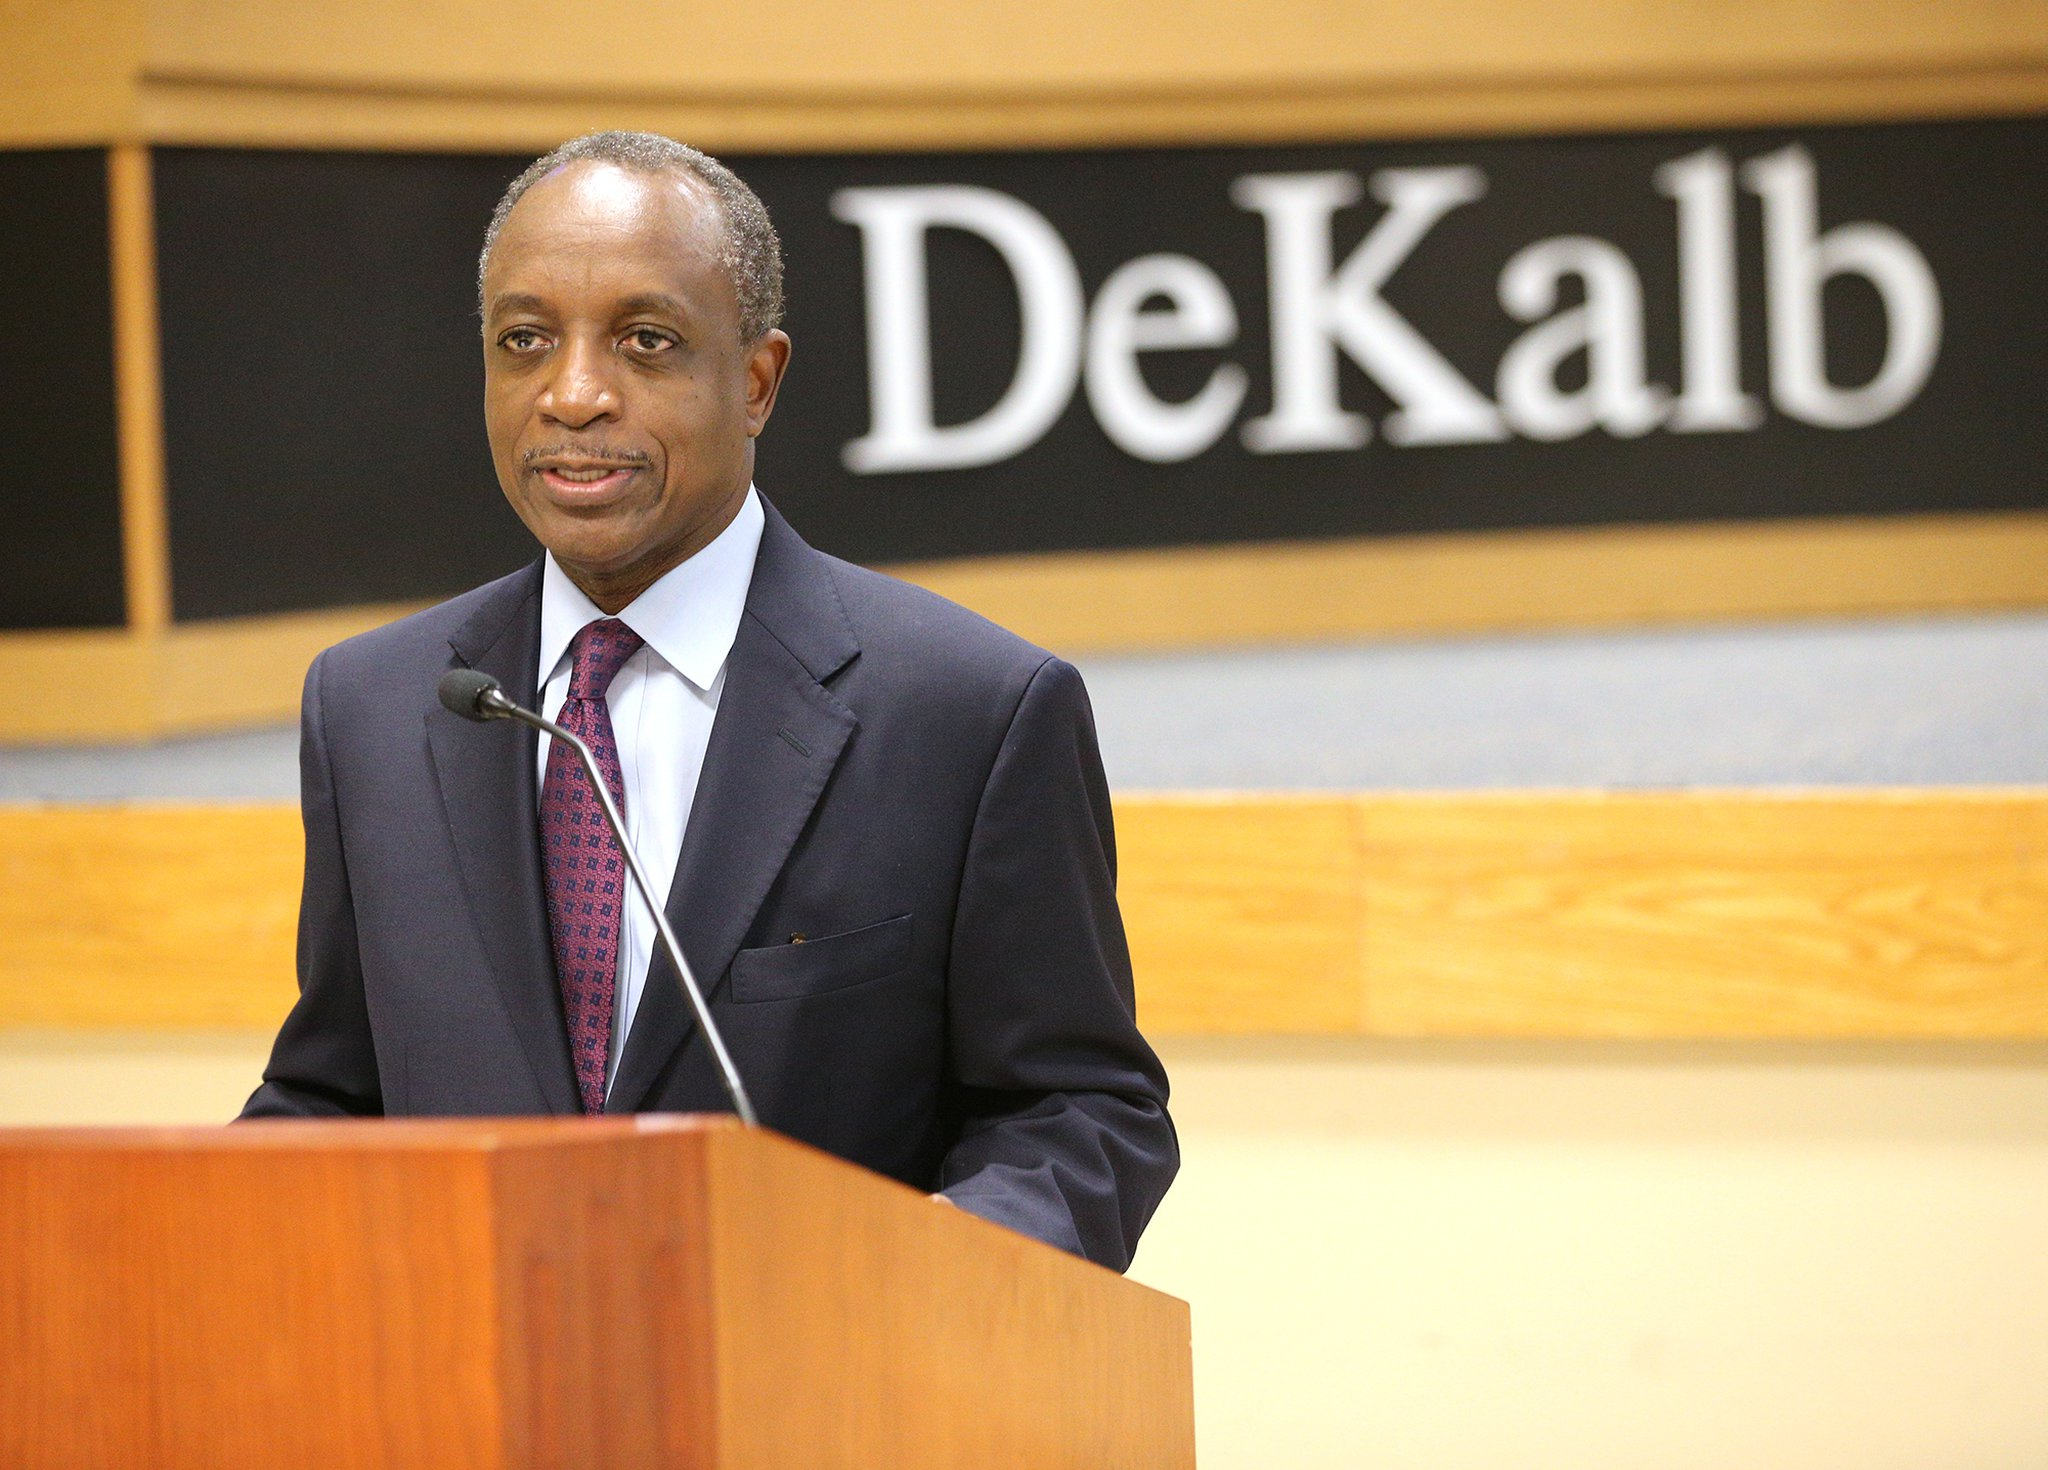 4 percent pay raise proposed for DeKalb public safety employees